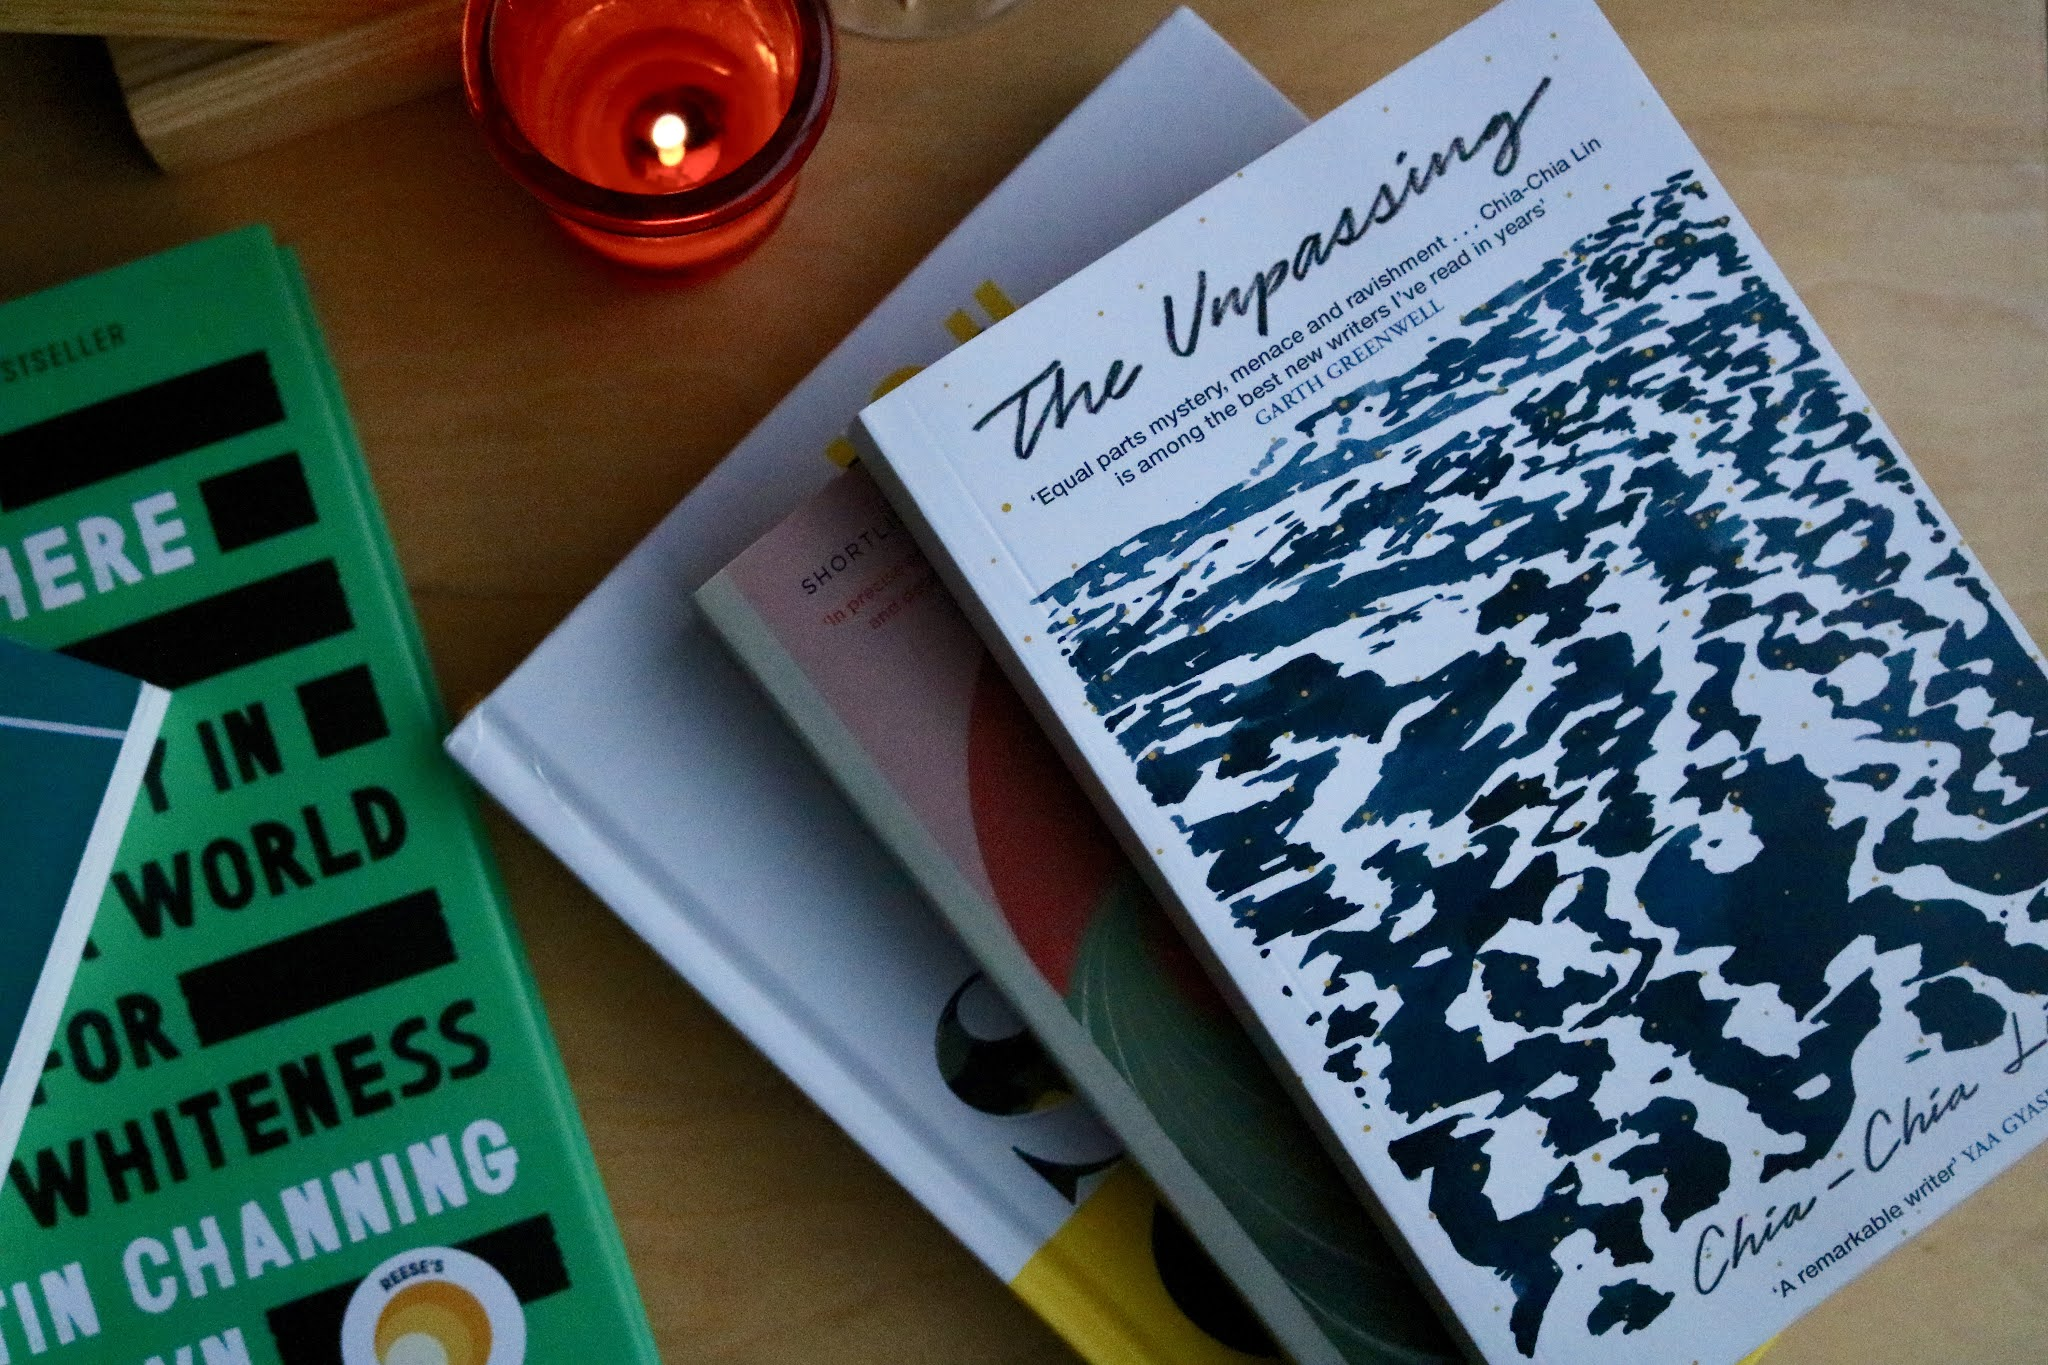 THE UNPASSING BY CHIA-CHIA LIN BOOK